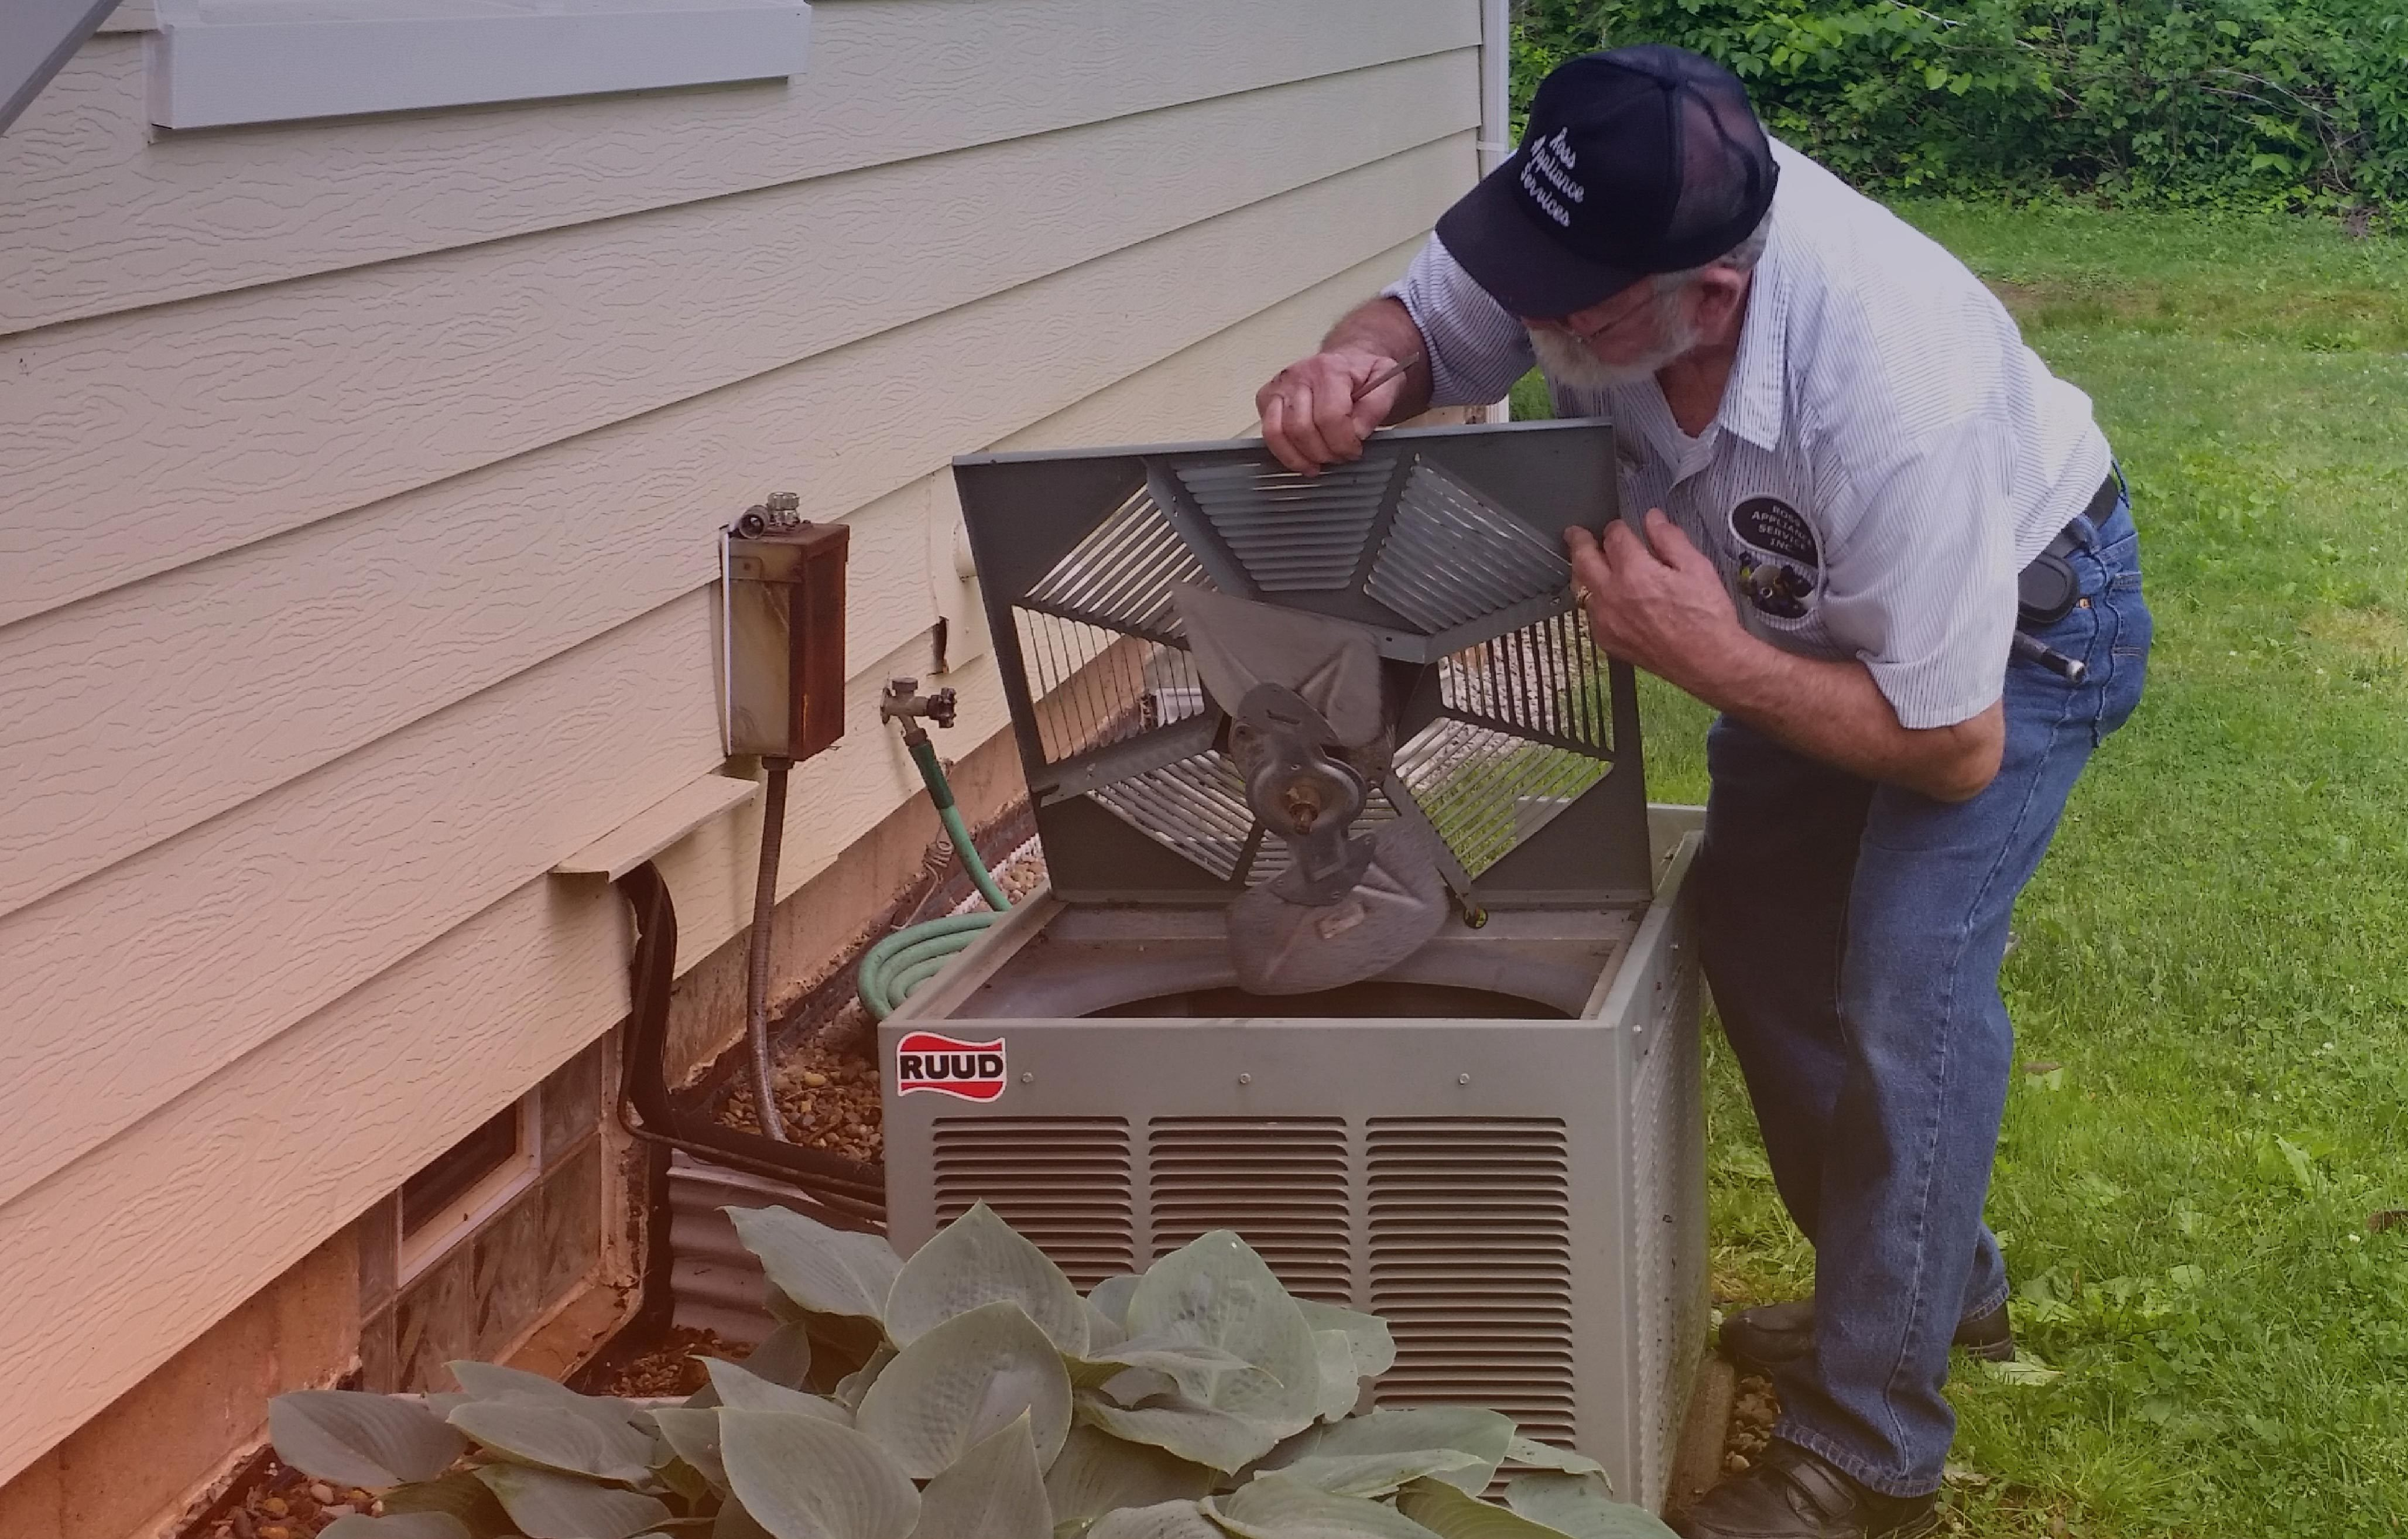 An AC unit receiving appliance repair in Avon Lake, OH